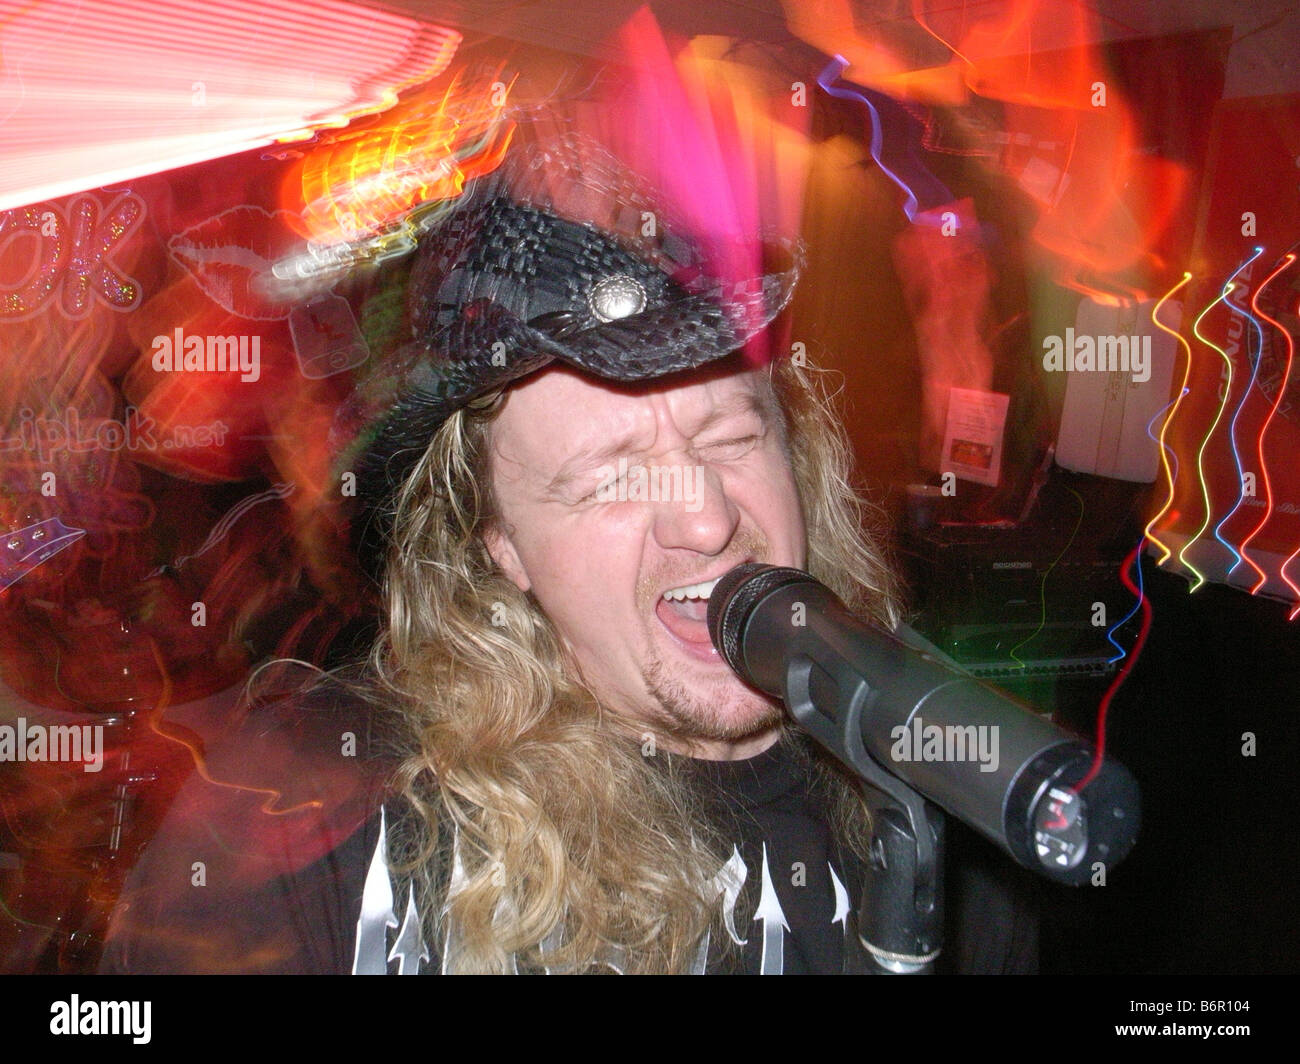 Kevin Lawless of the locally famous Bar band 'Liplock' sings during a show in West Haven Connecticut USA - Stock Image